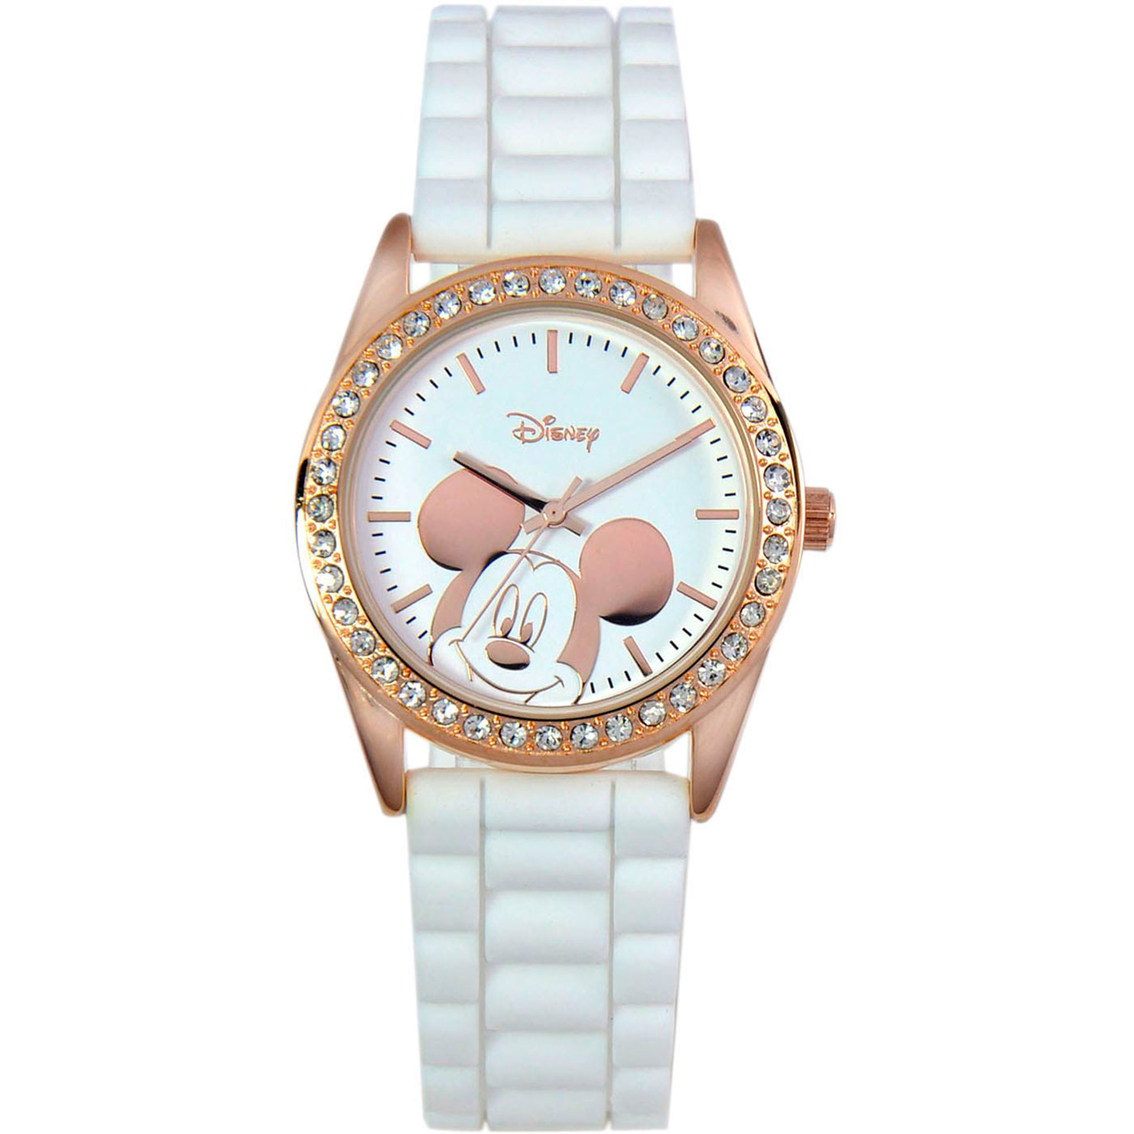 Disney Mickey Mouse Rose Gold Bling Watch Leather Band